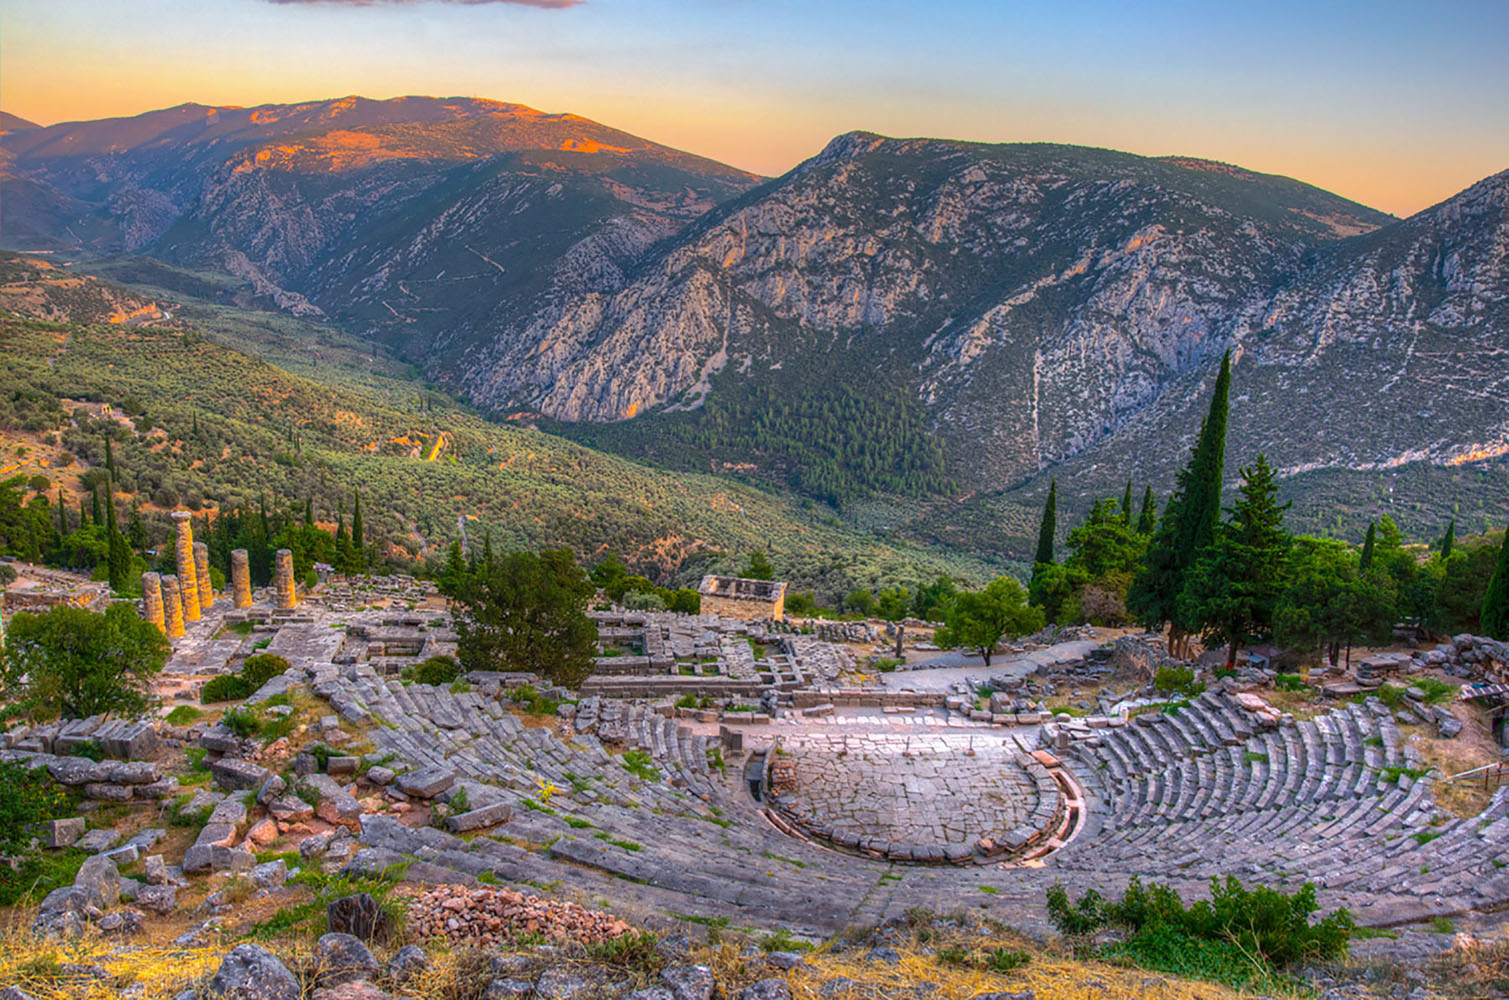 The ruins of a theatre in ancient Delphi, Greece at sunset